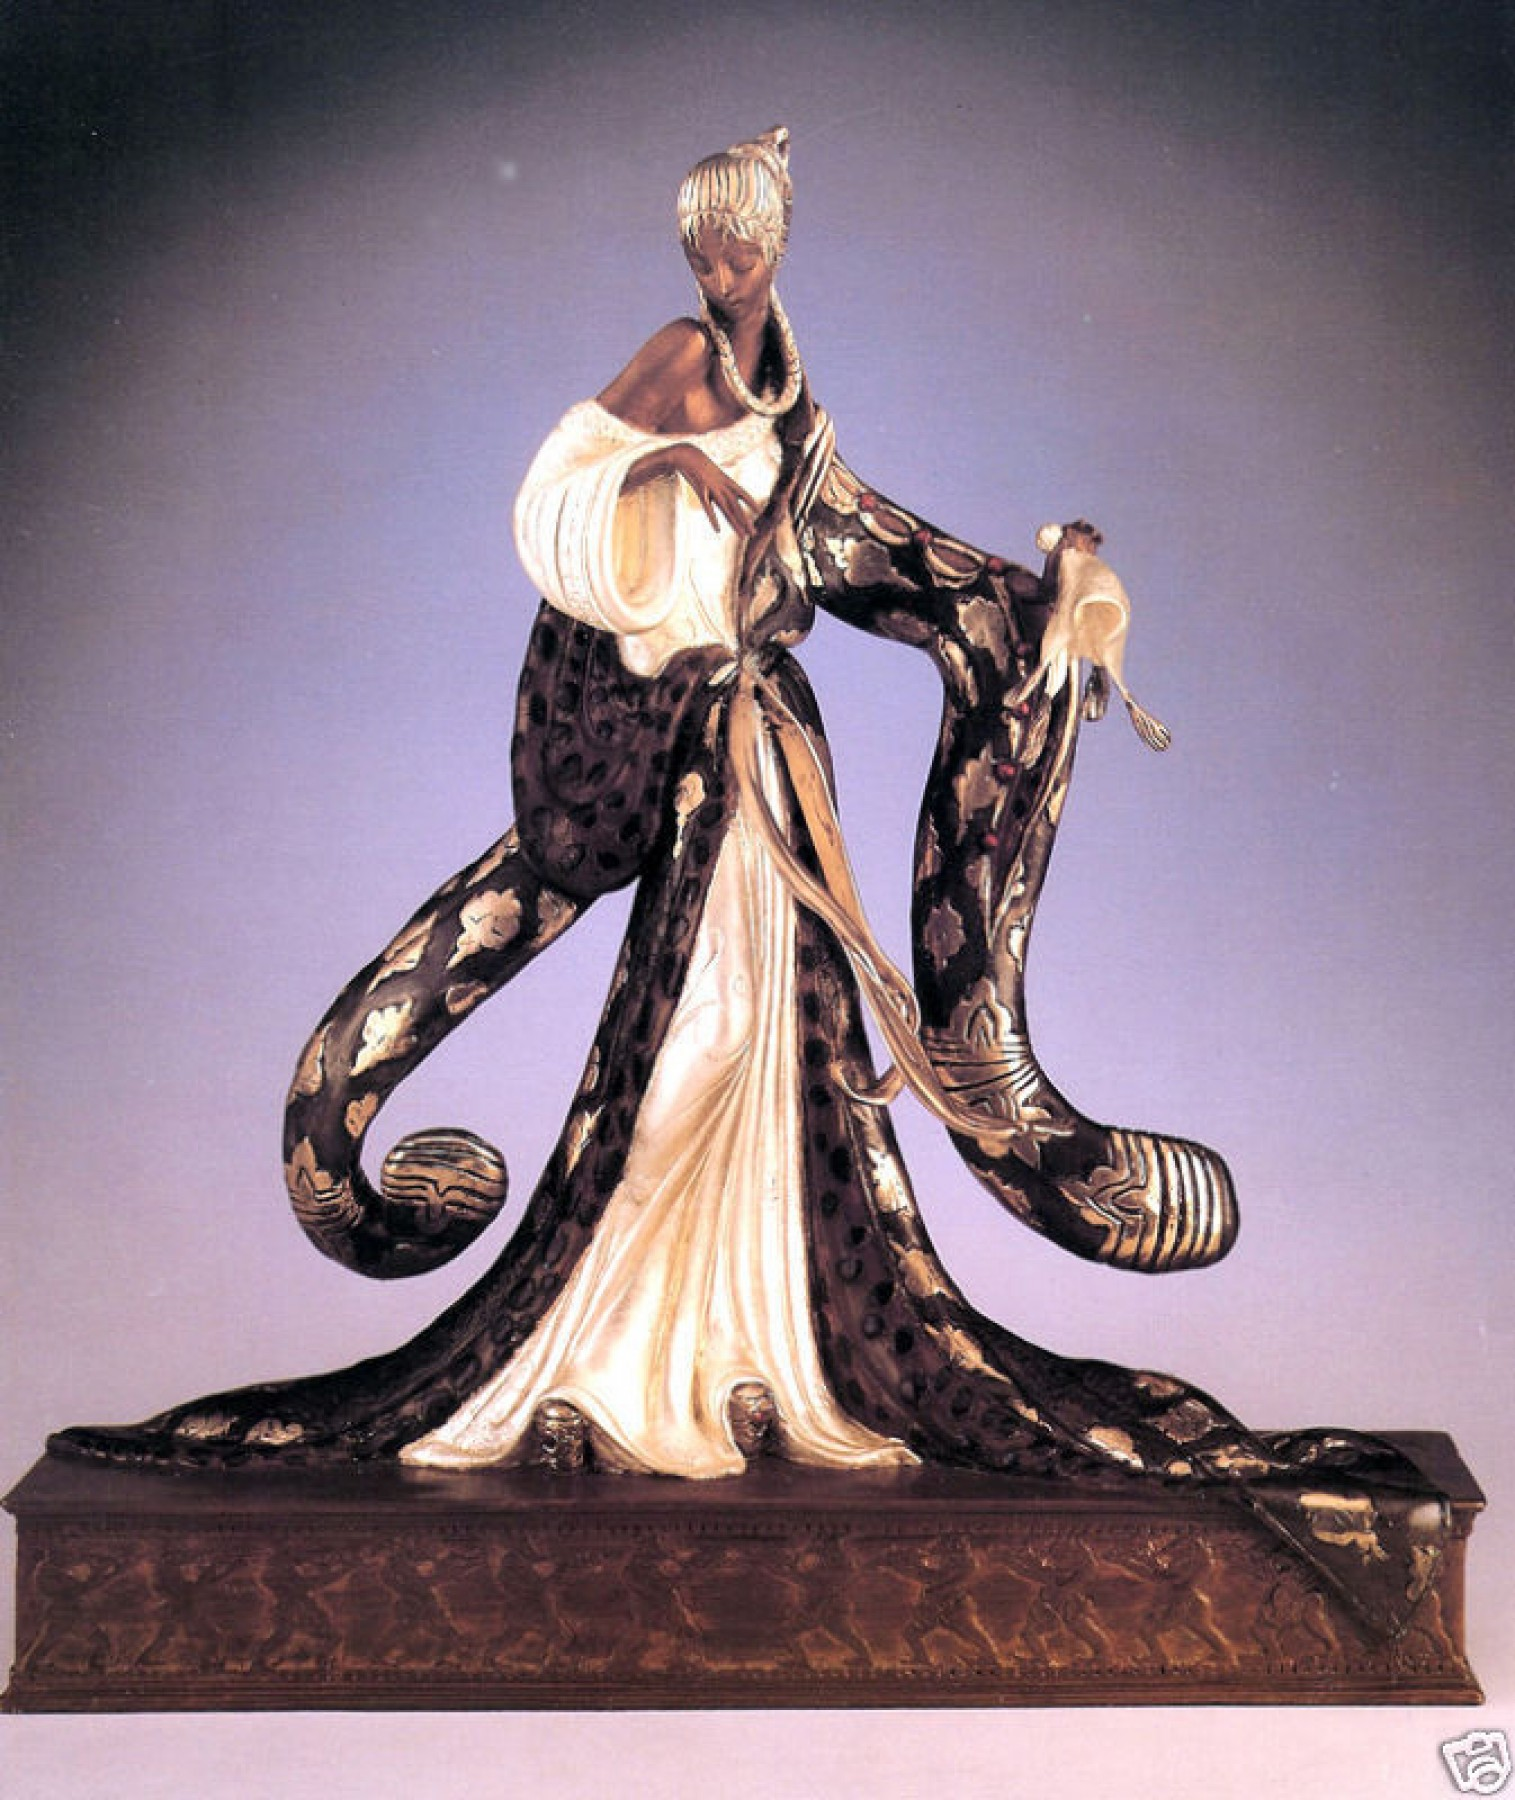 Rigoletto Bronze Sculpture  1988 19 in  by  Erte